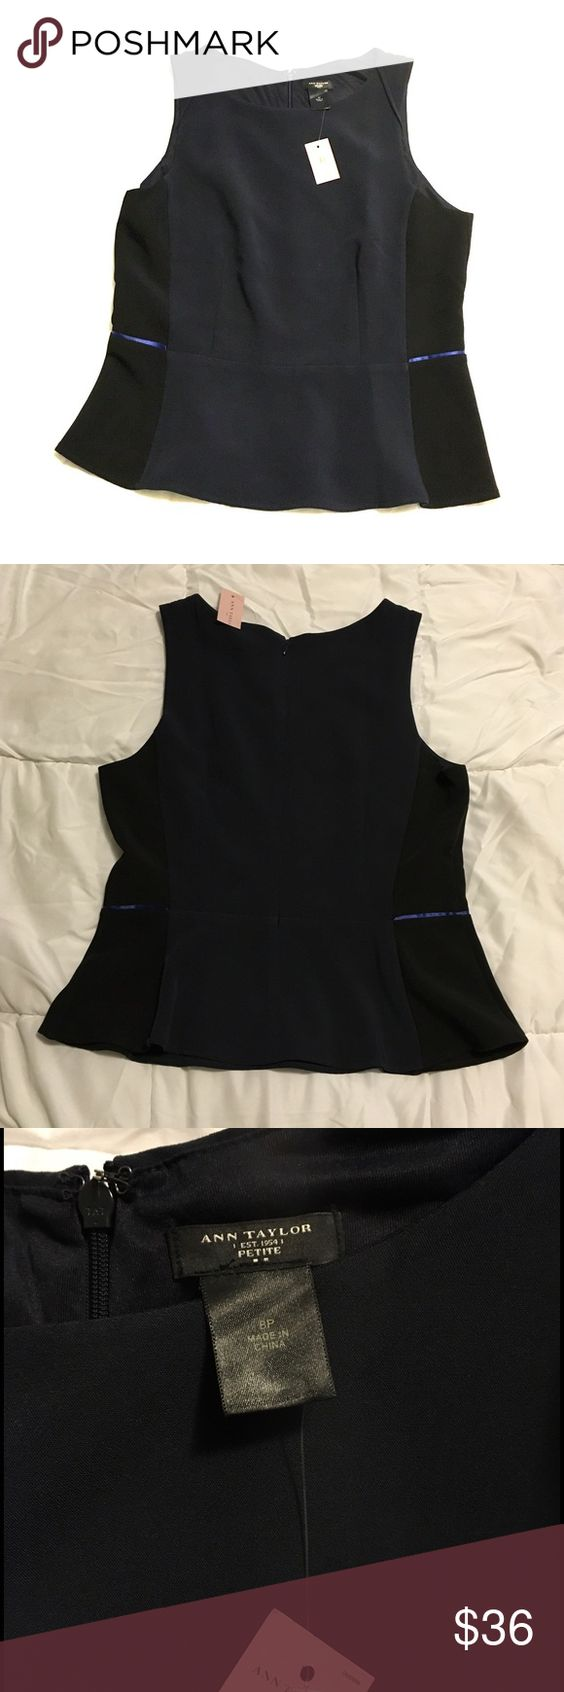 Ann Taylor Factory sleeveless blouse This blouse is brand new w/tag attached. Perfect for business casual attire. Color is dark blue and black. Ann Taylor Factory Tops Blouses